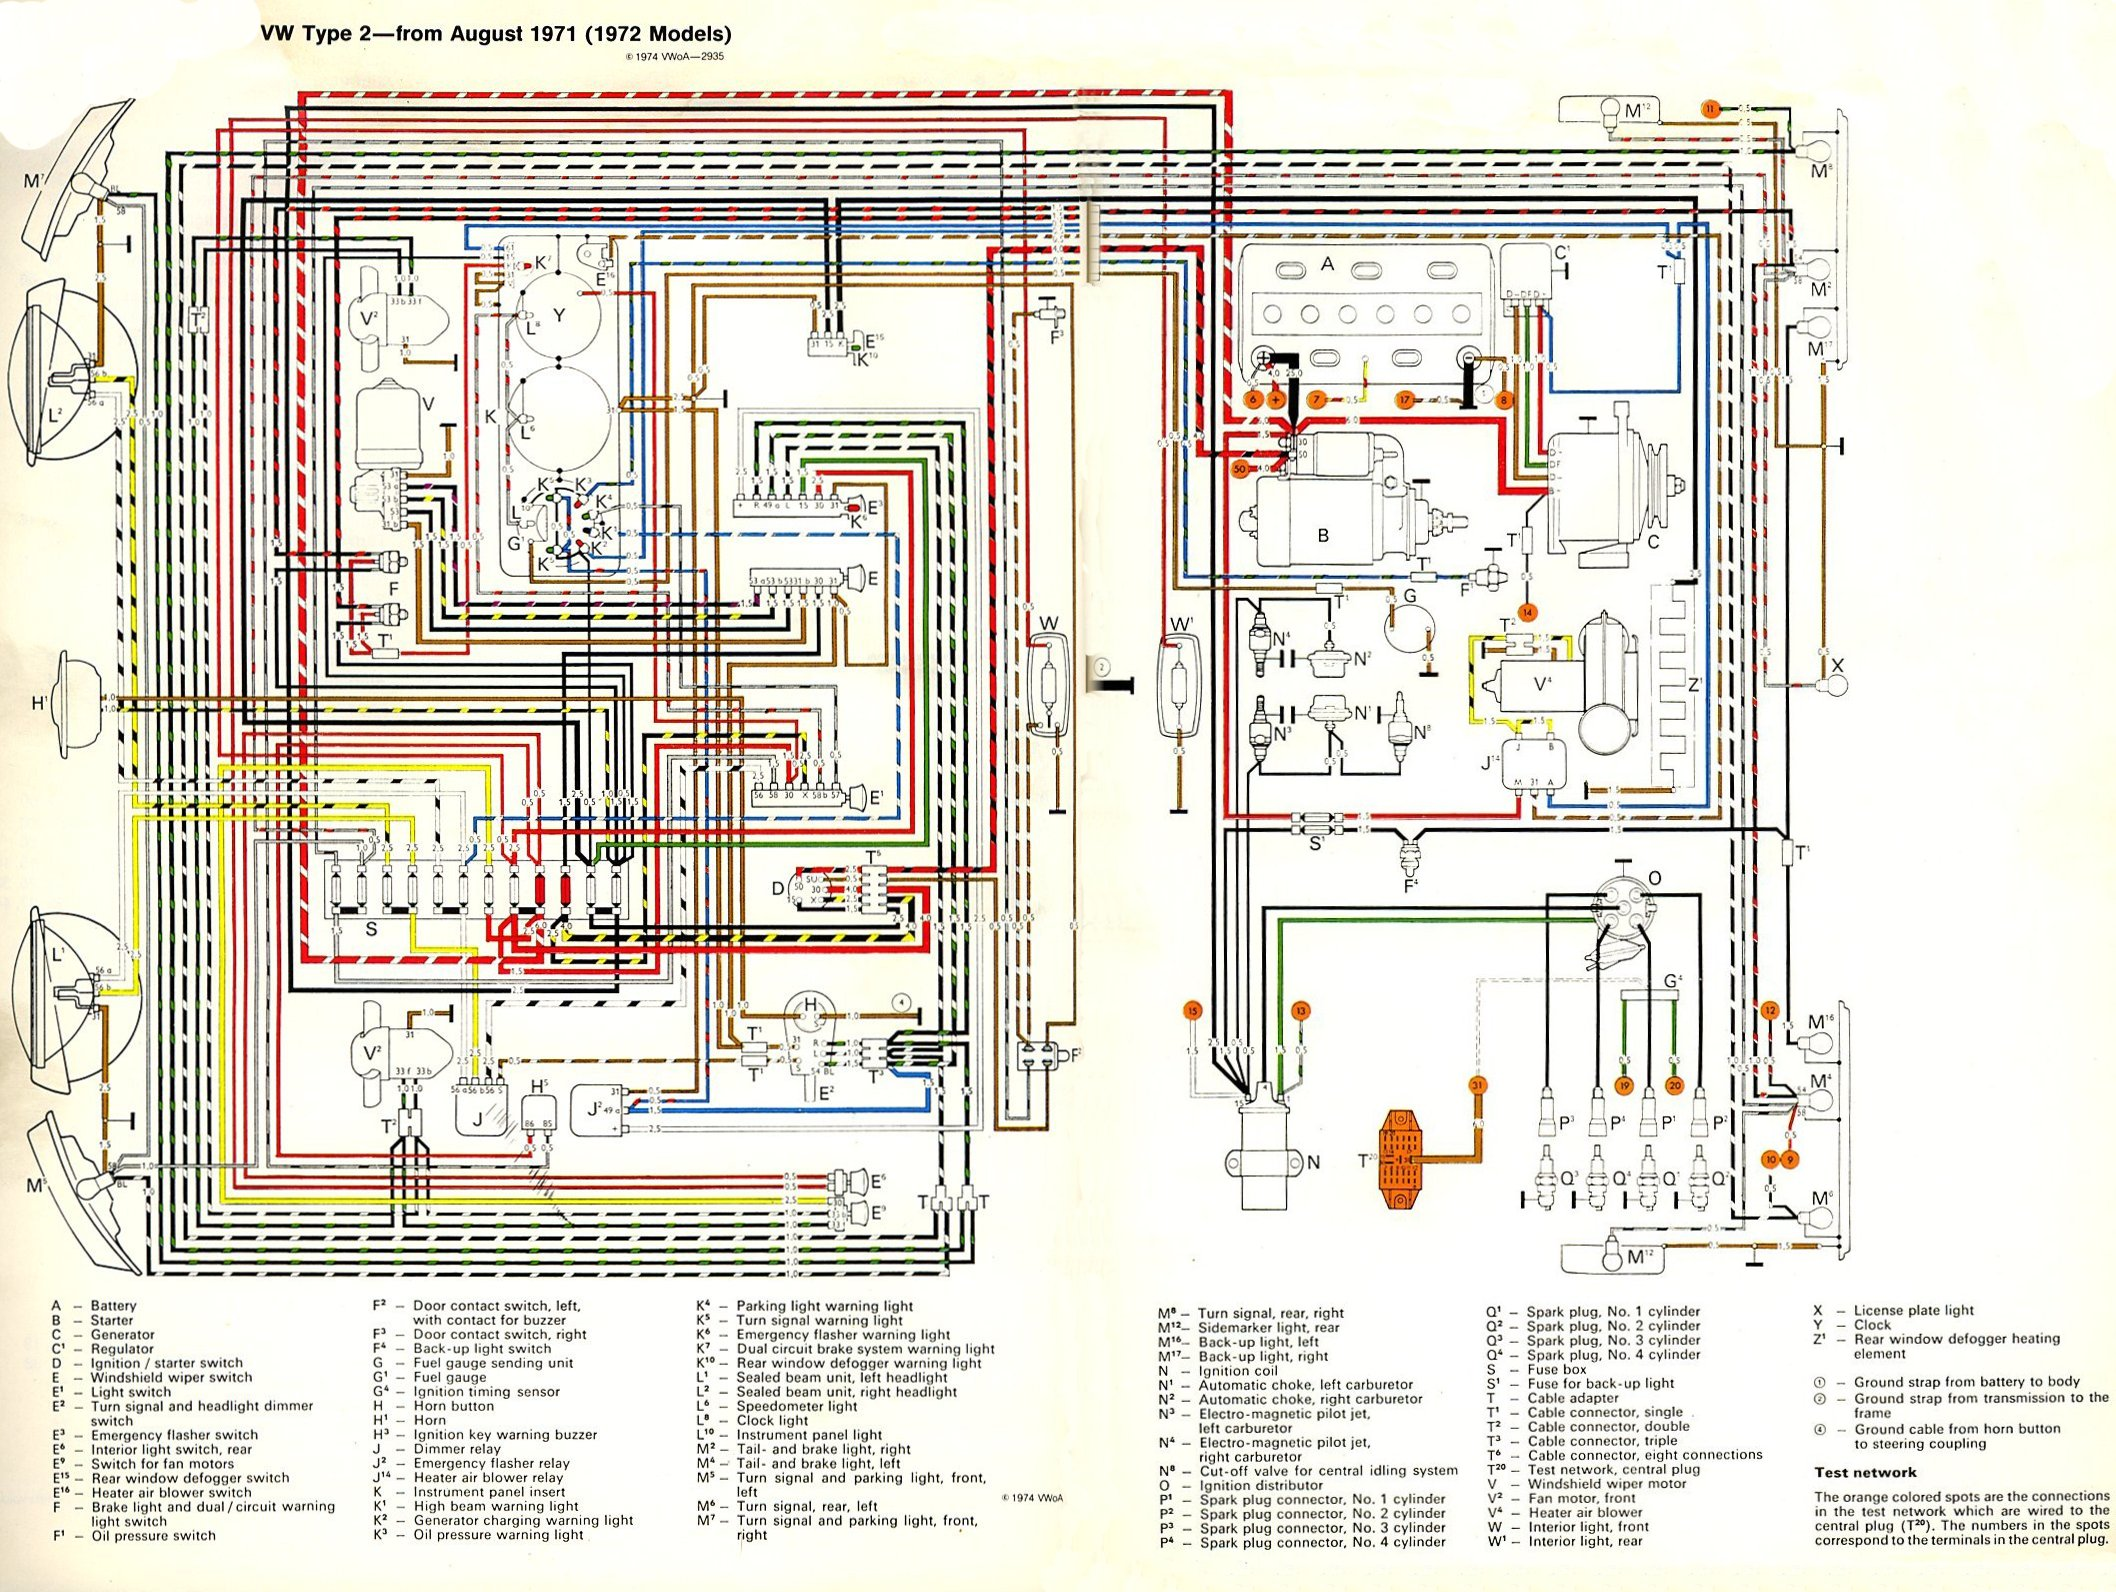 bus_1972_wiring 1977 porsche 911 wiring diagram wiring diagram simonand vw t5 forum wiring diagram at mifinder.co